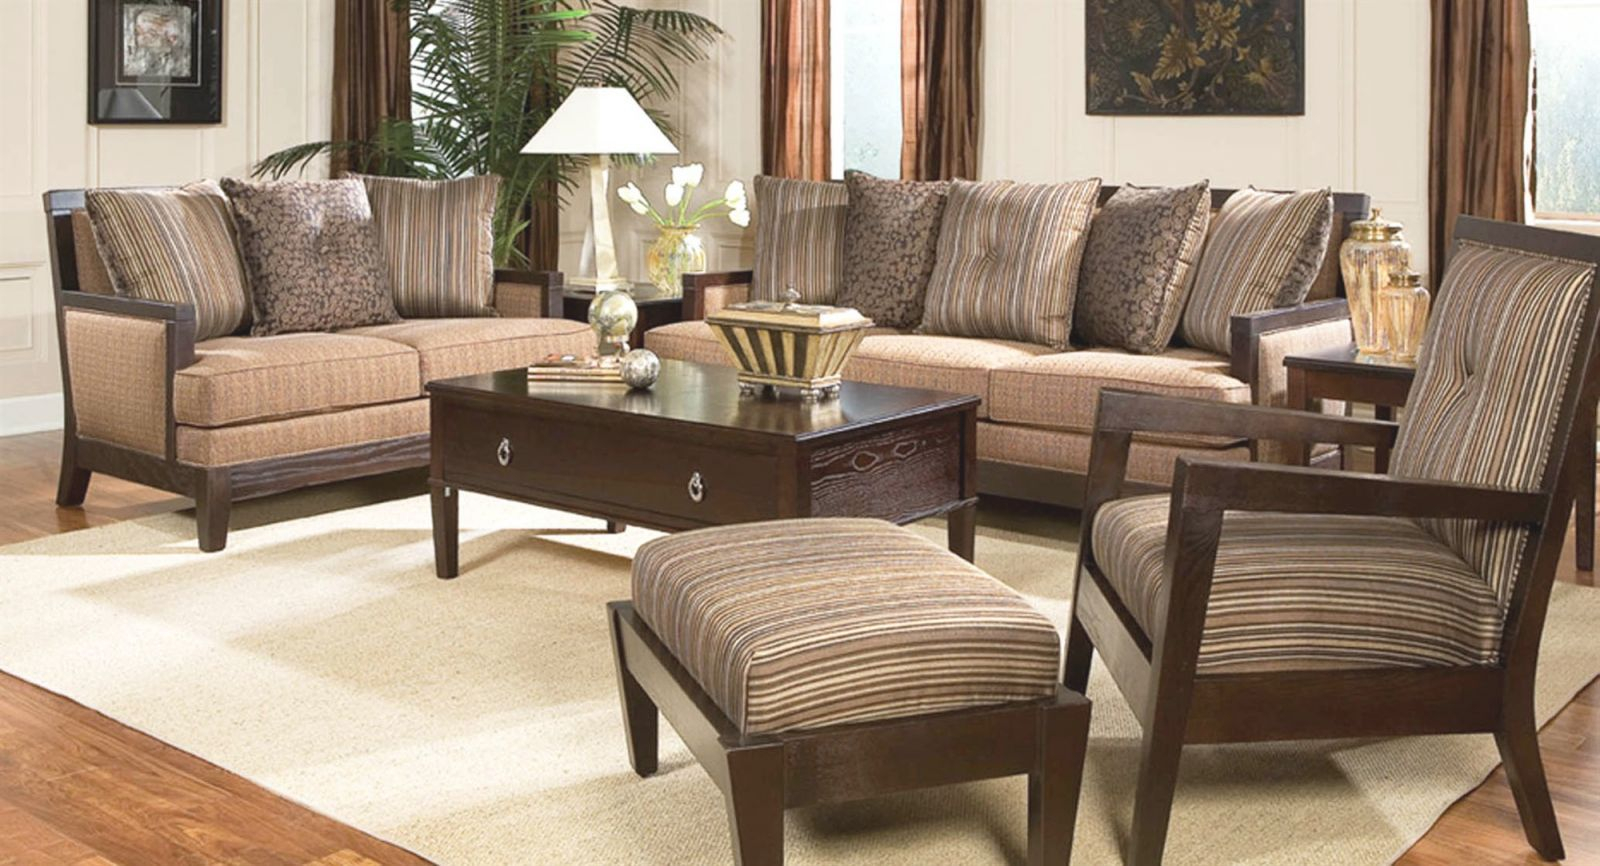 Lovely Affordable Living Room Furniture Sets - Awesome Decors